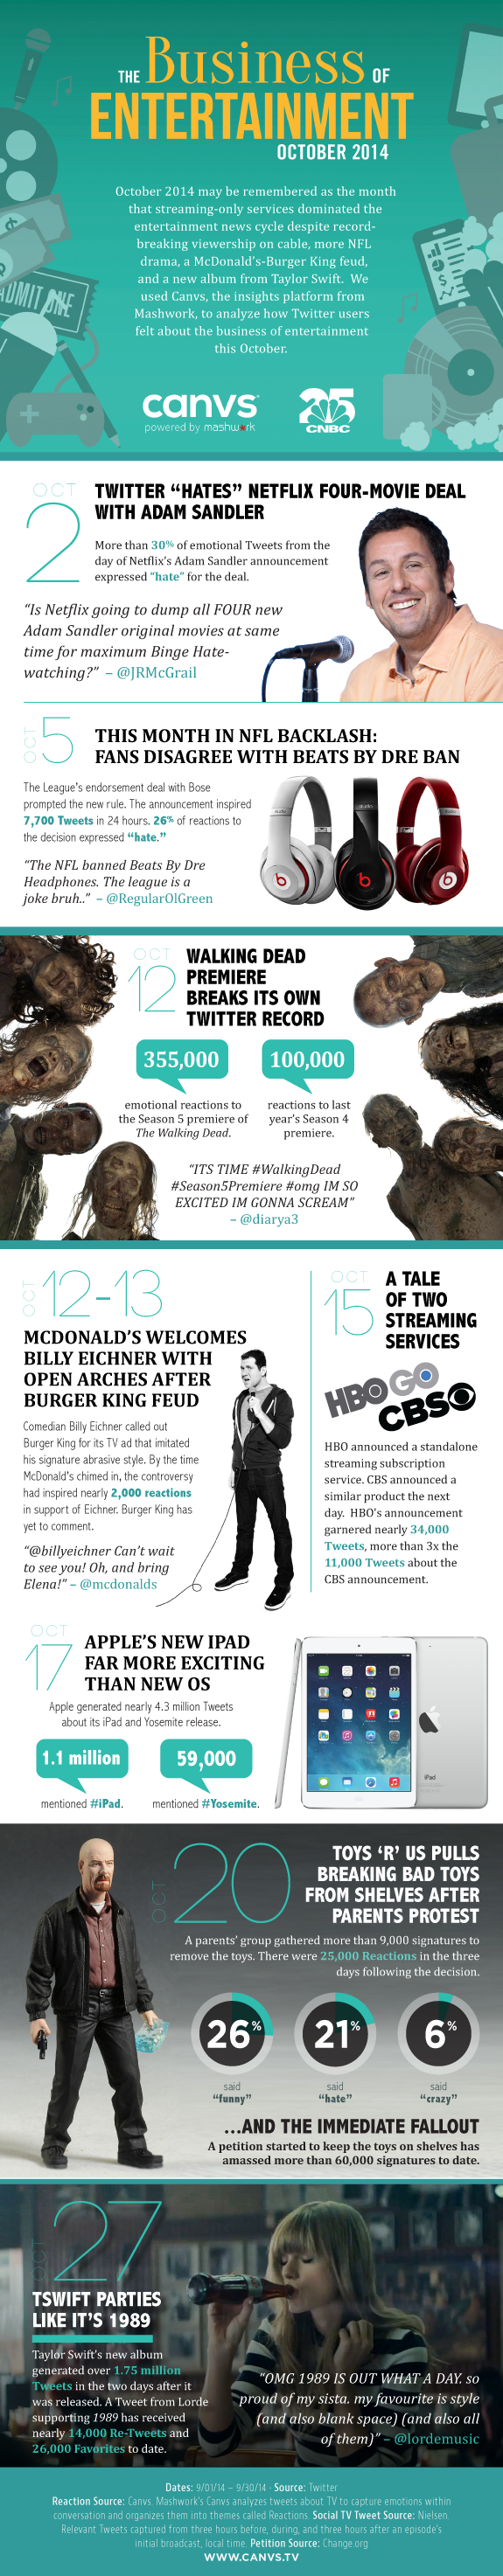 CNBC October entertainment infographic